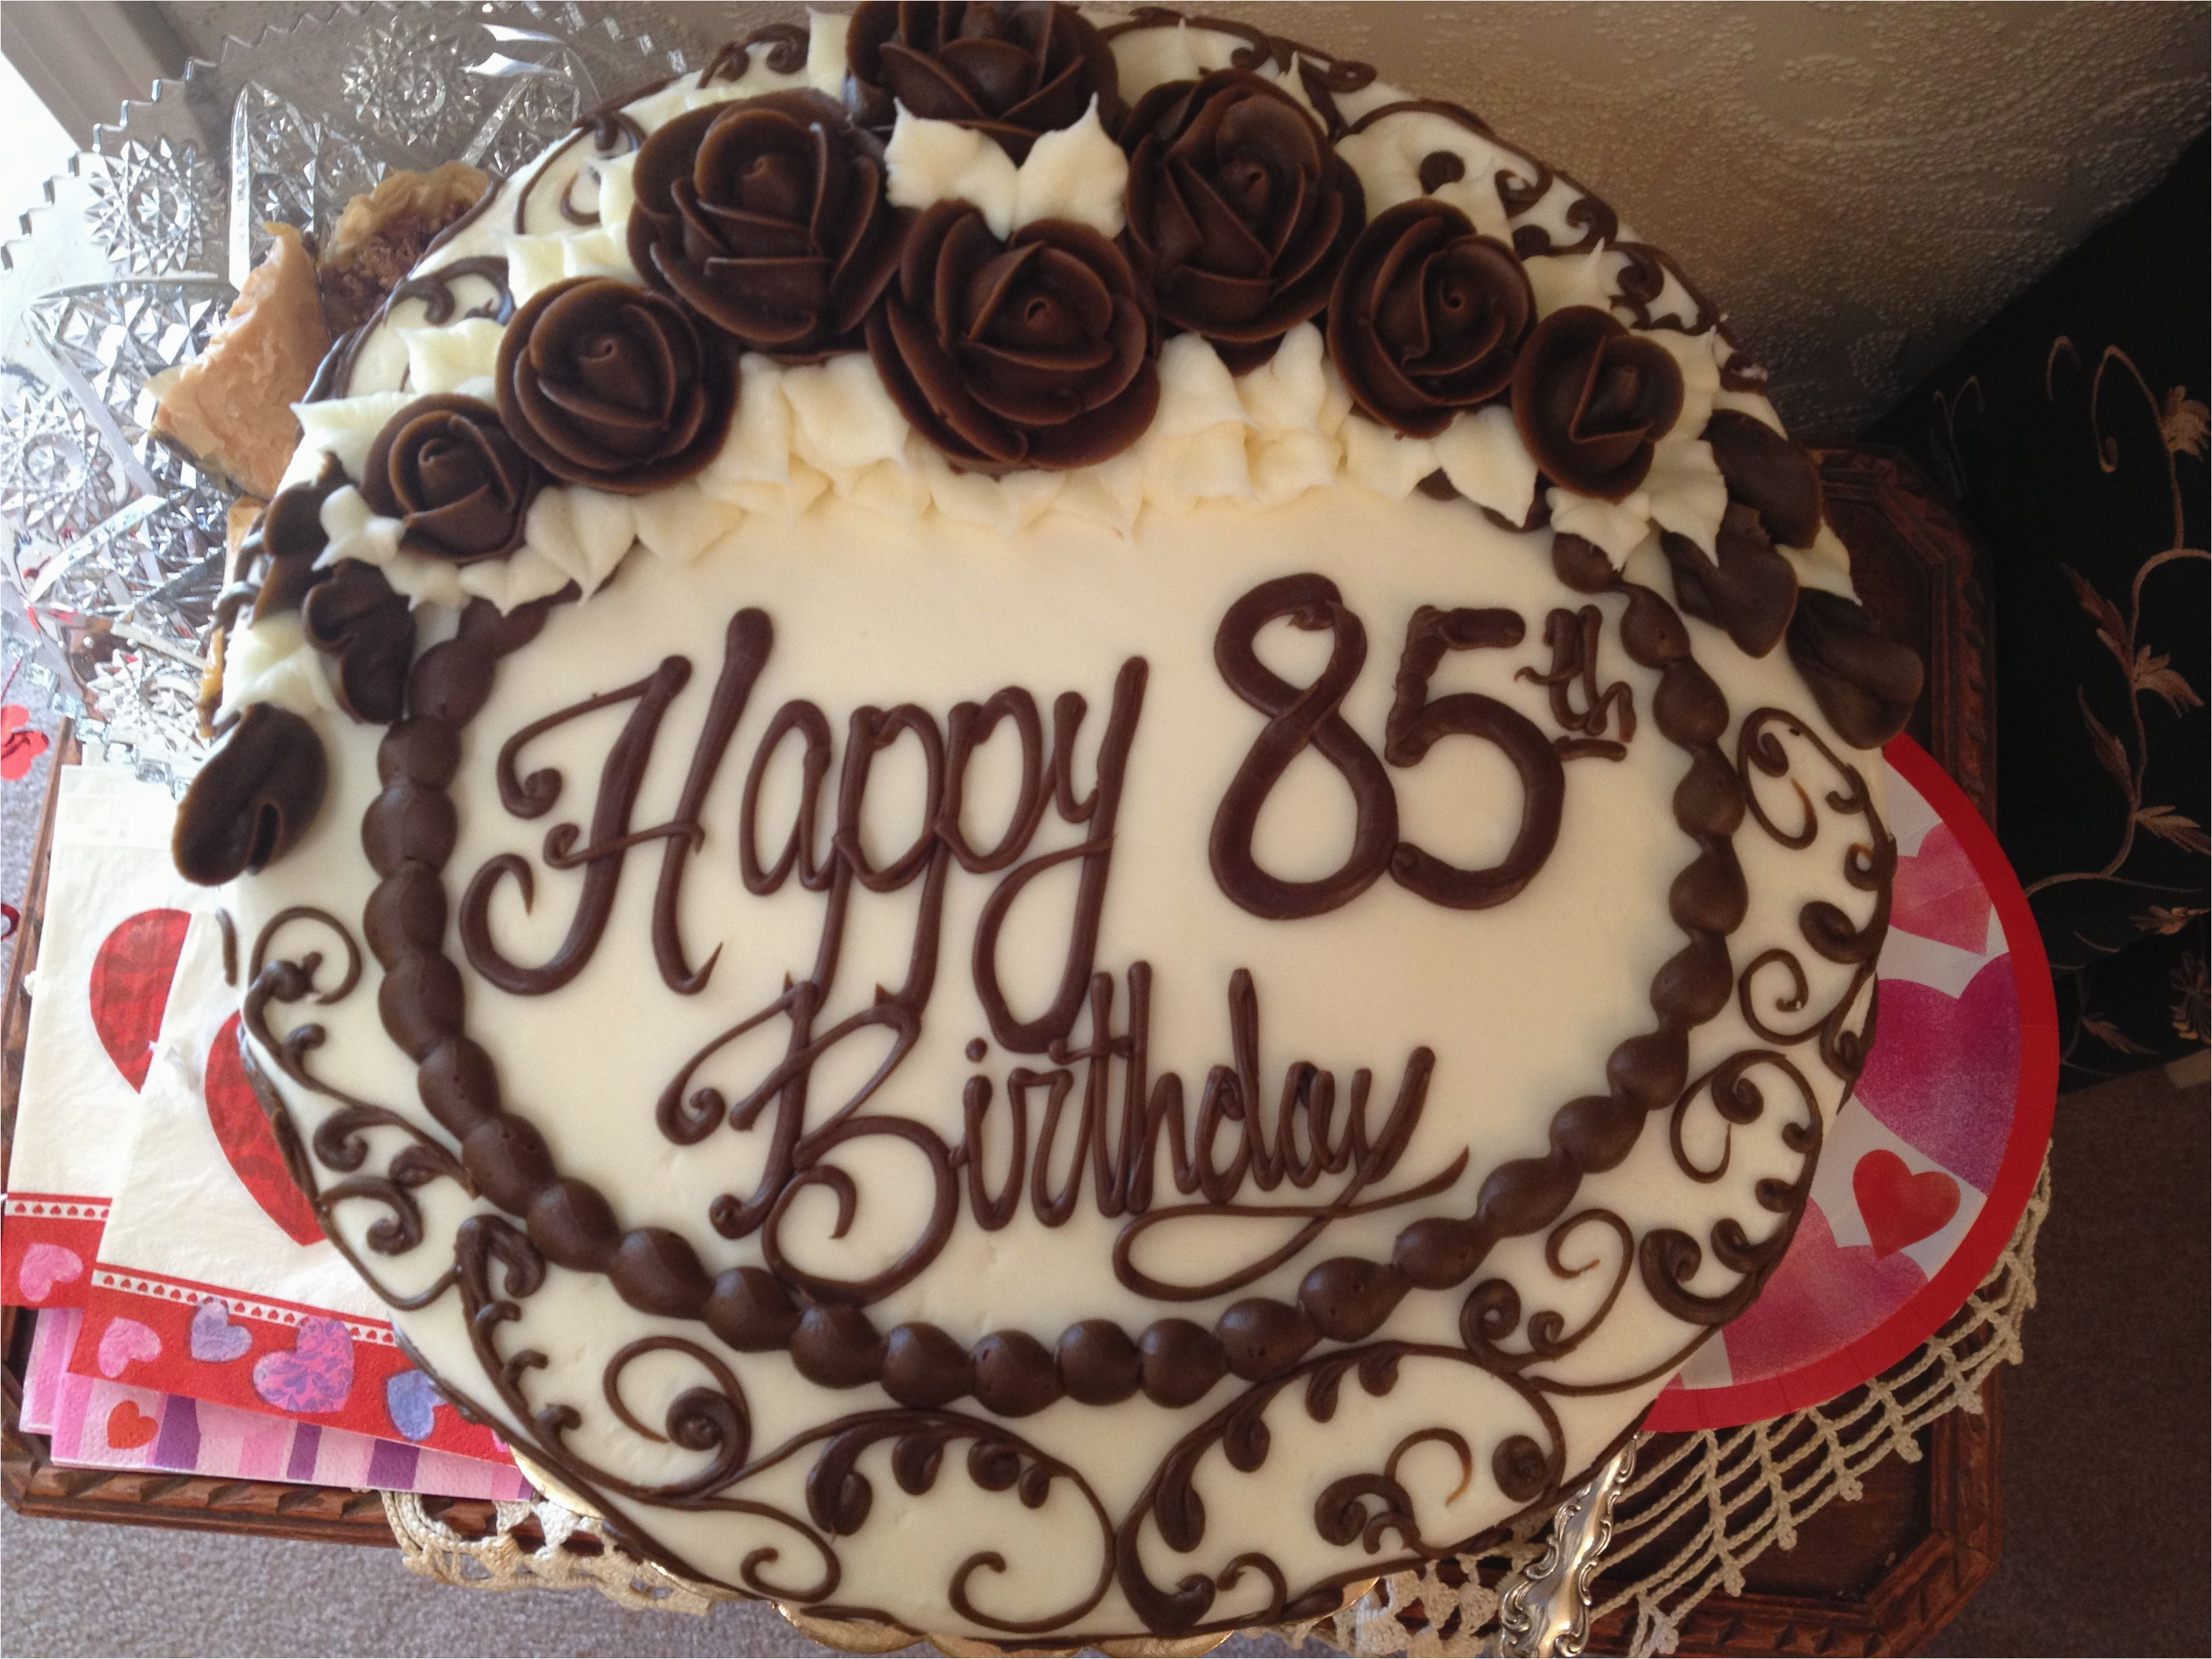 85th Birthday Decorations Beautiful Cake Decorating Ideas For Party